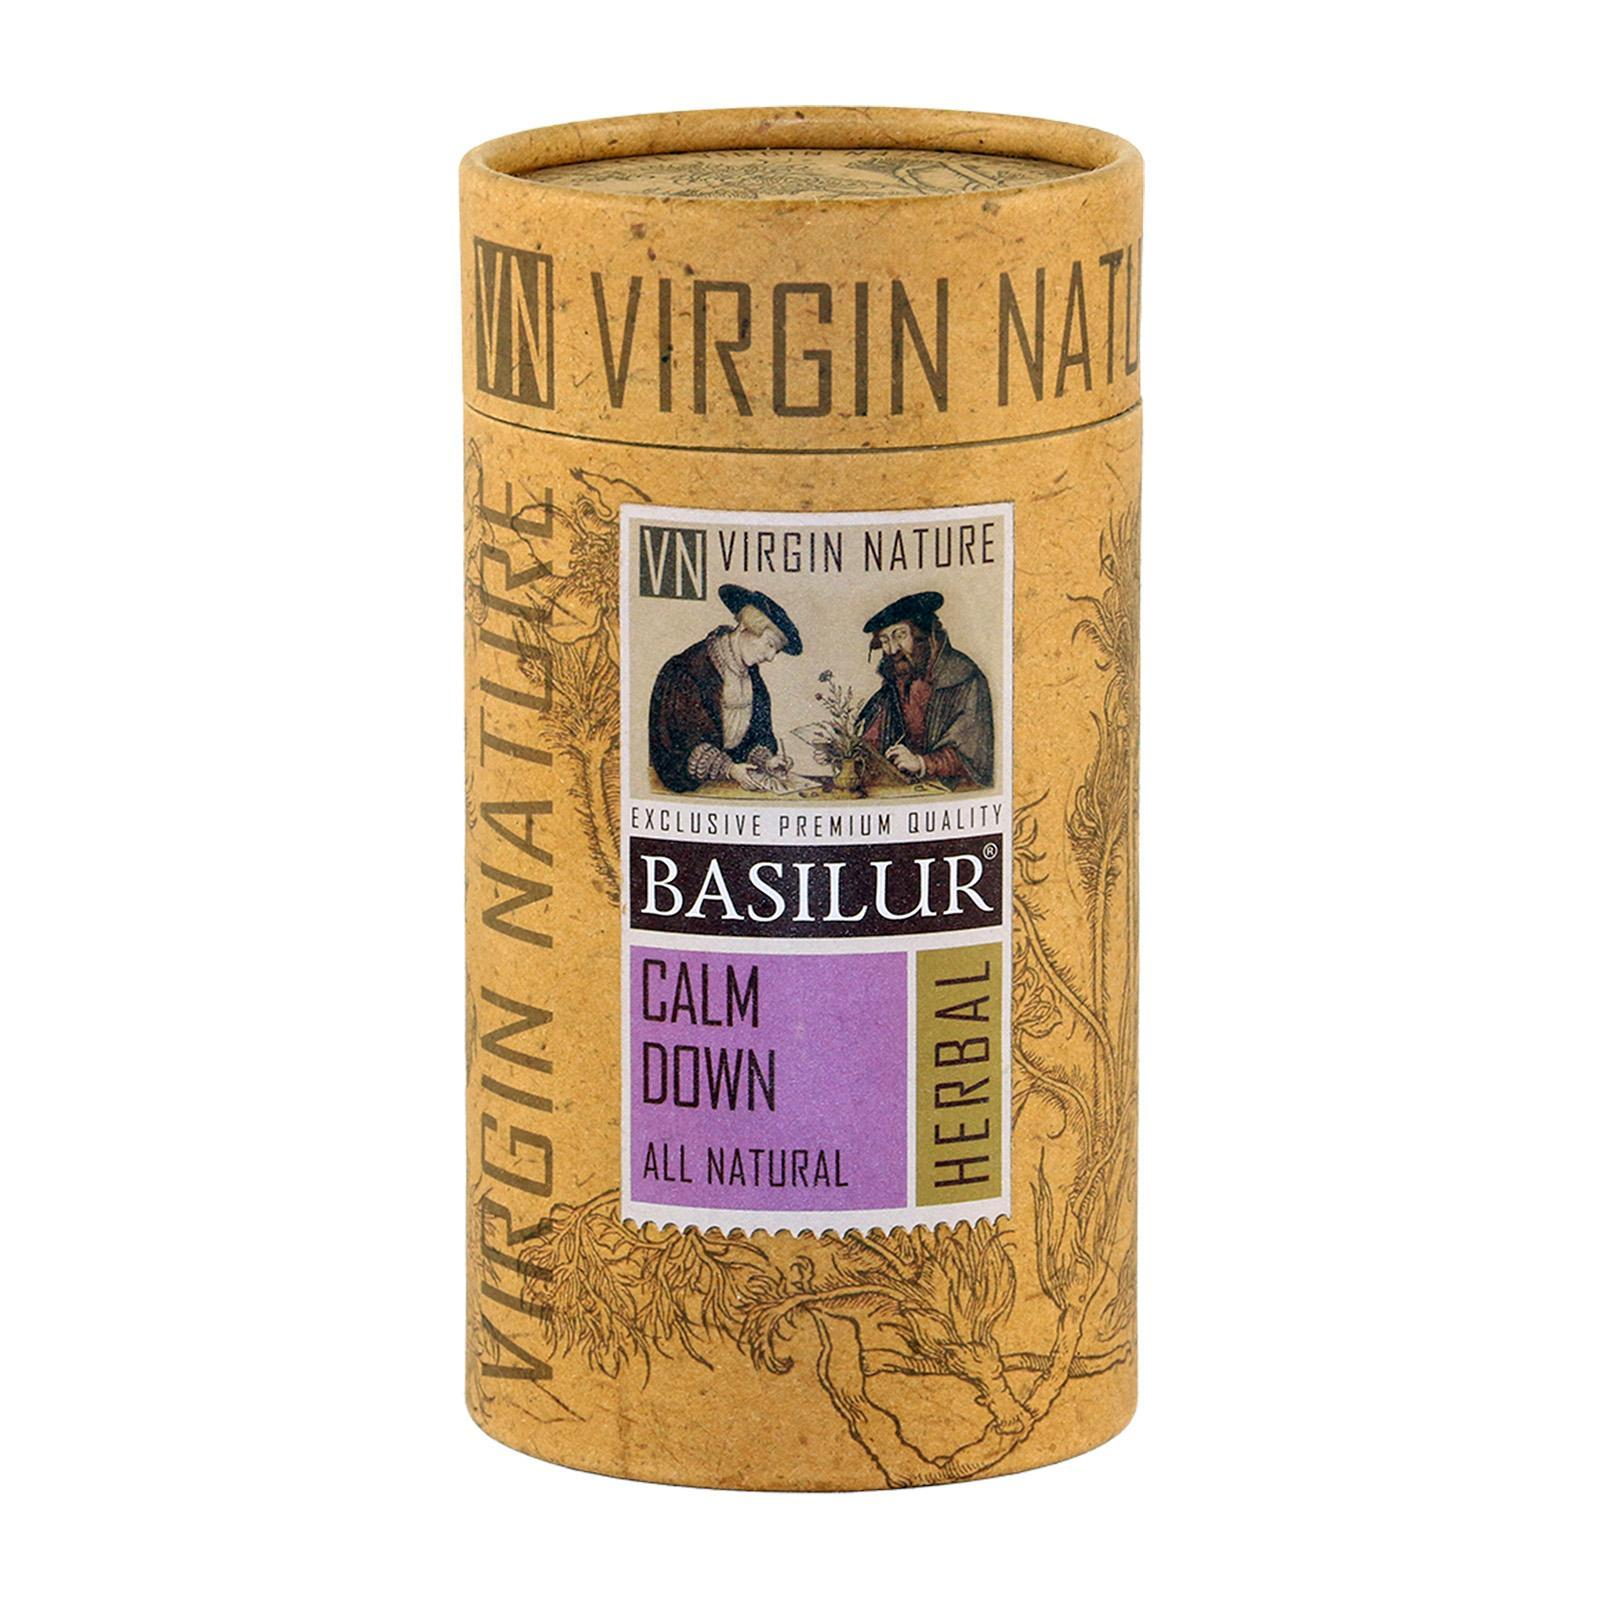 Basilur Caffeine-Free Virgin Nature Calm Down - Camomile Lavender And Jasmine Herbal Tea